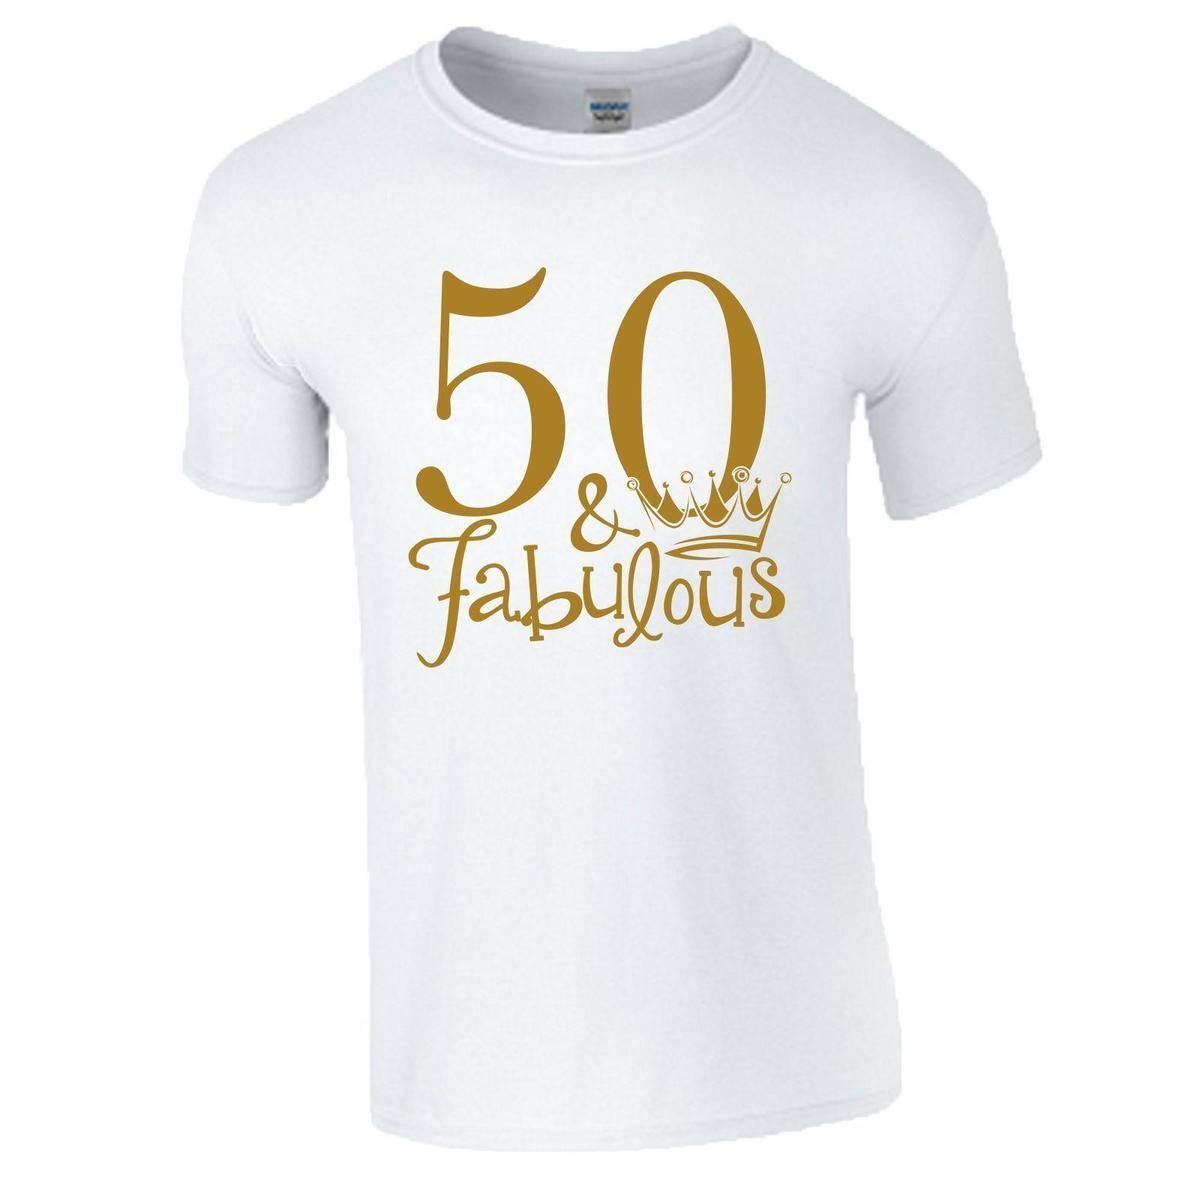 9e39a3b7f 50th Birthday Gift T Shirt Made In 1968 King Queen 50 Fabulous Crown Mens  Ladies Funny Slogan T Shirts Cool Shirt Design From Amesion2504, $12.08|  DHgate.